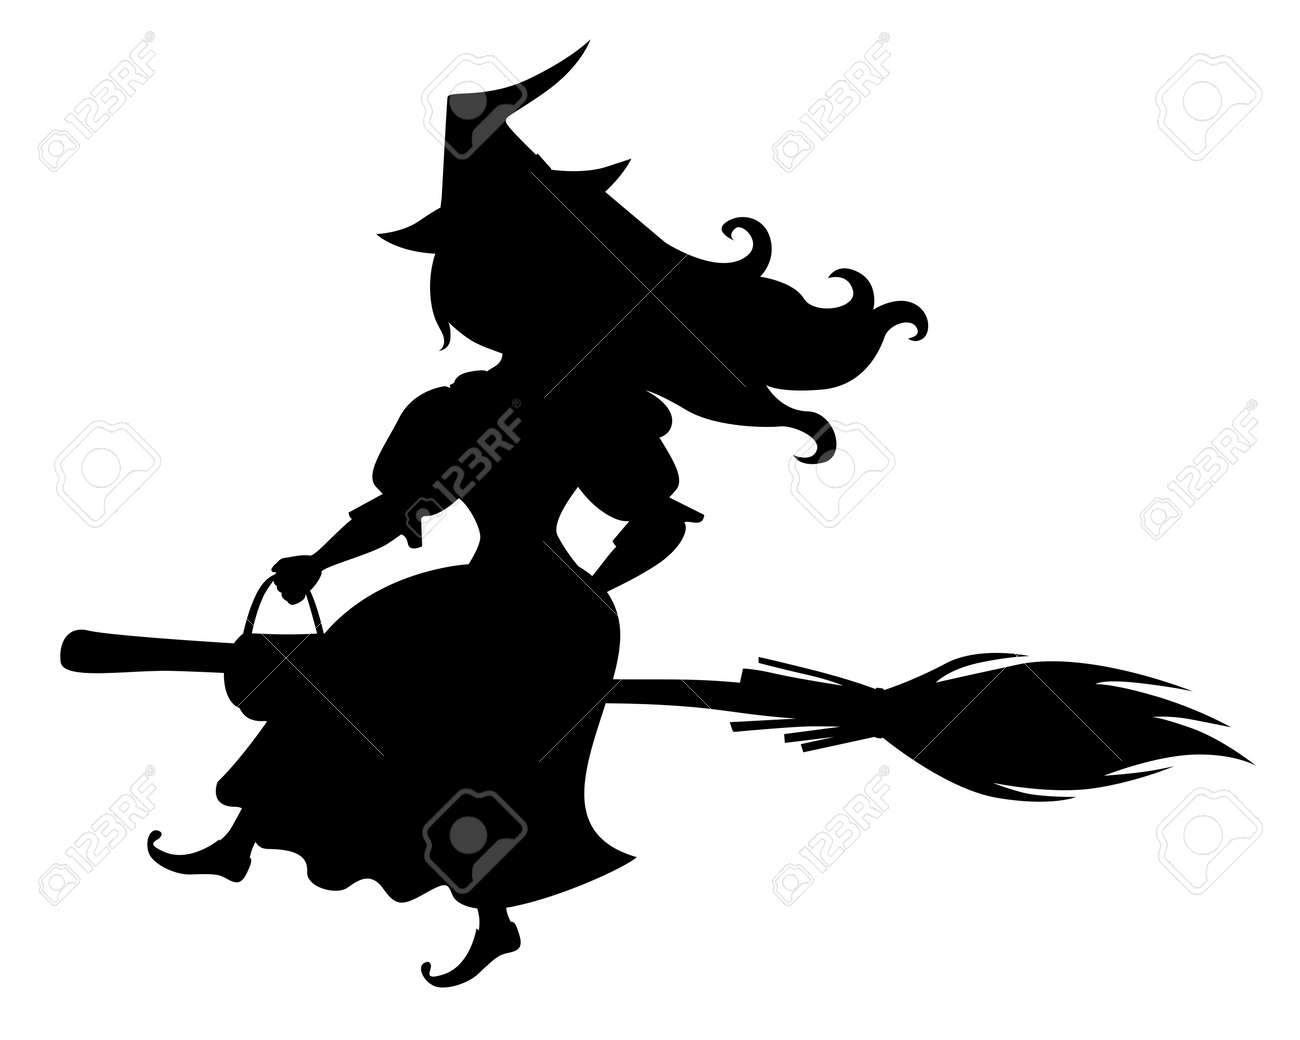 Illustrations Of Cute Halloween Silhouette Witch With Hat On Royalty Free Cliparts Vectors And Stock Illustration Image 85864231